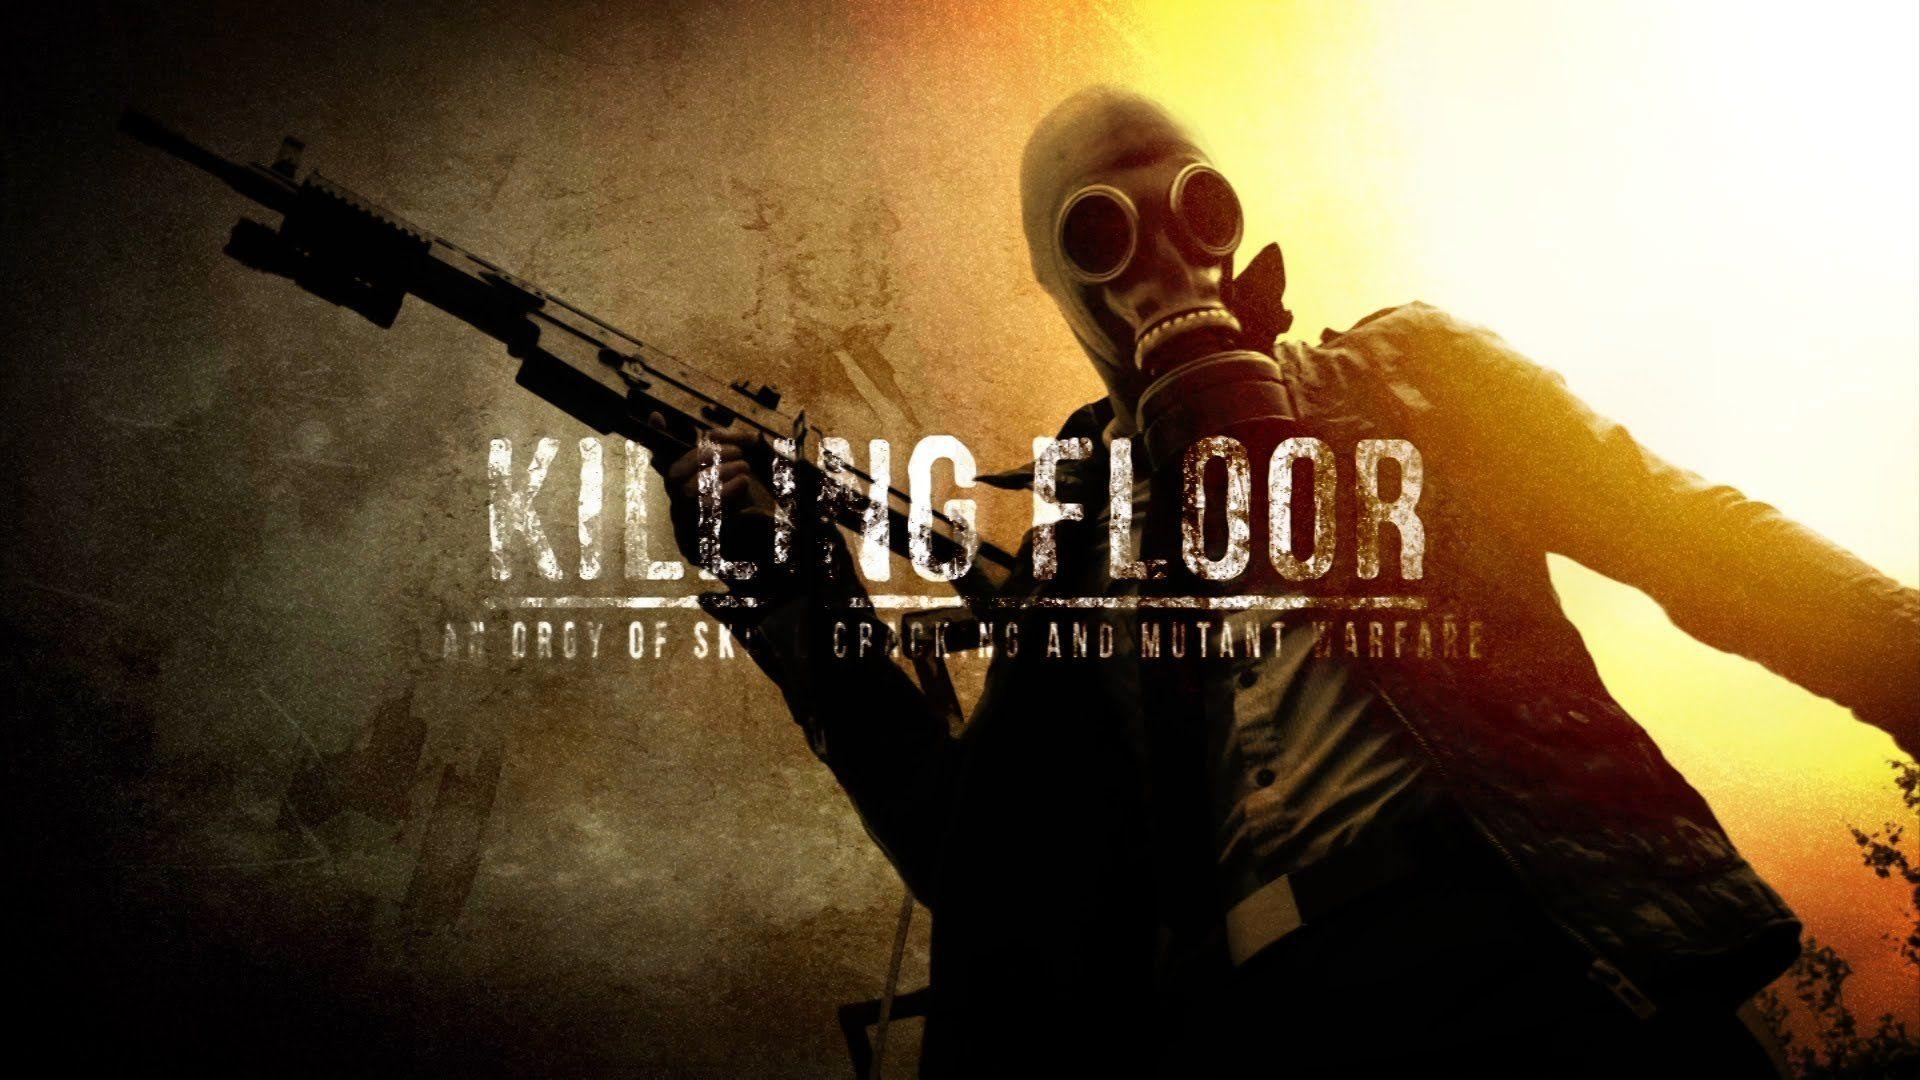 Killing Floor 2 Wallpapers On Wallpaperdog